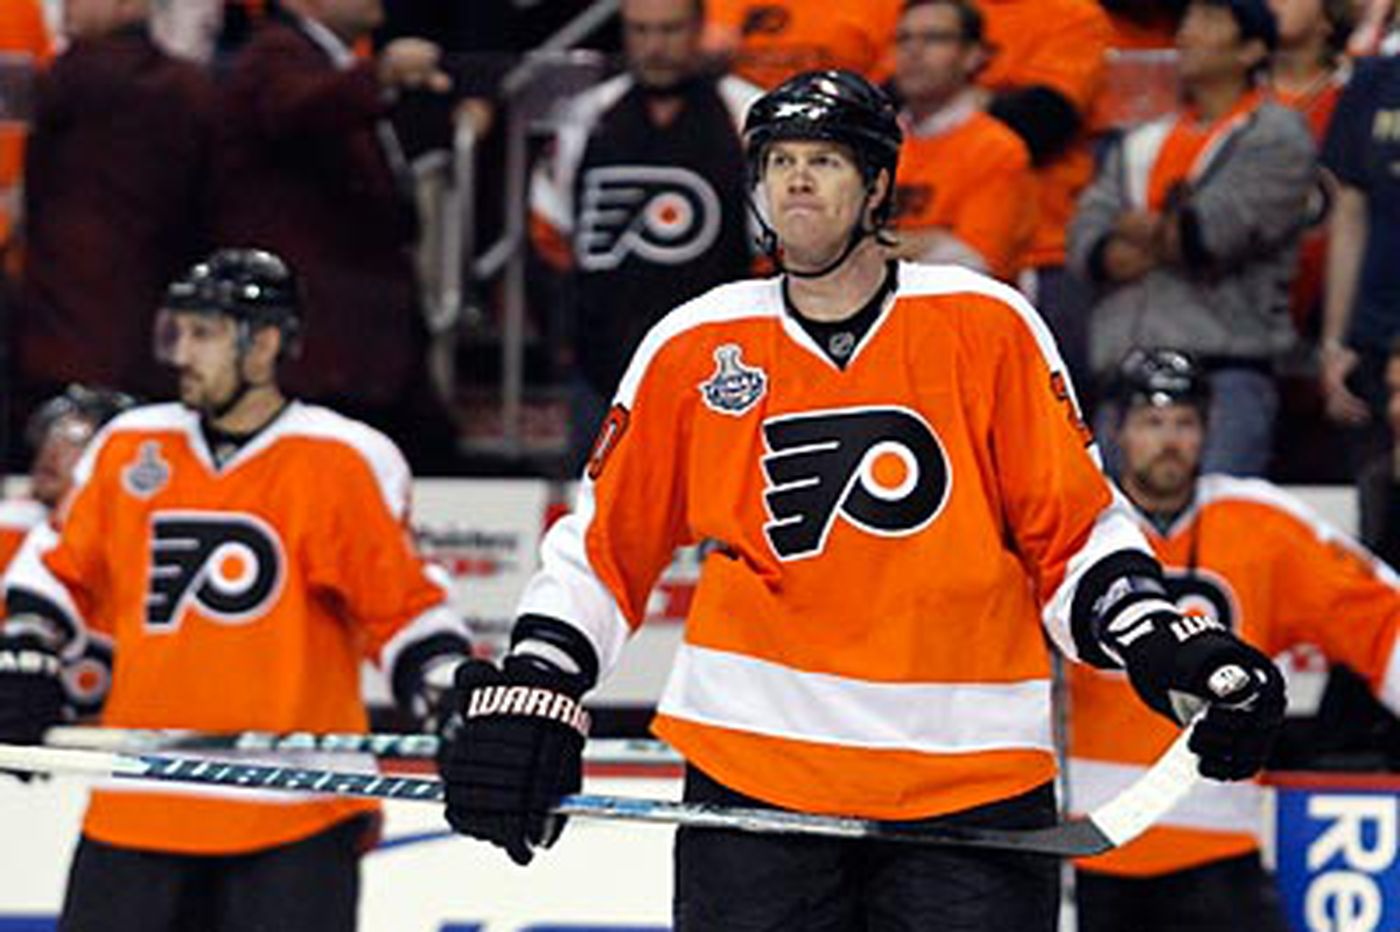 In the end, Pronger and Flyers run out of gas